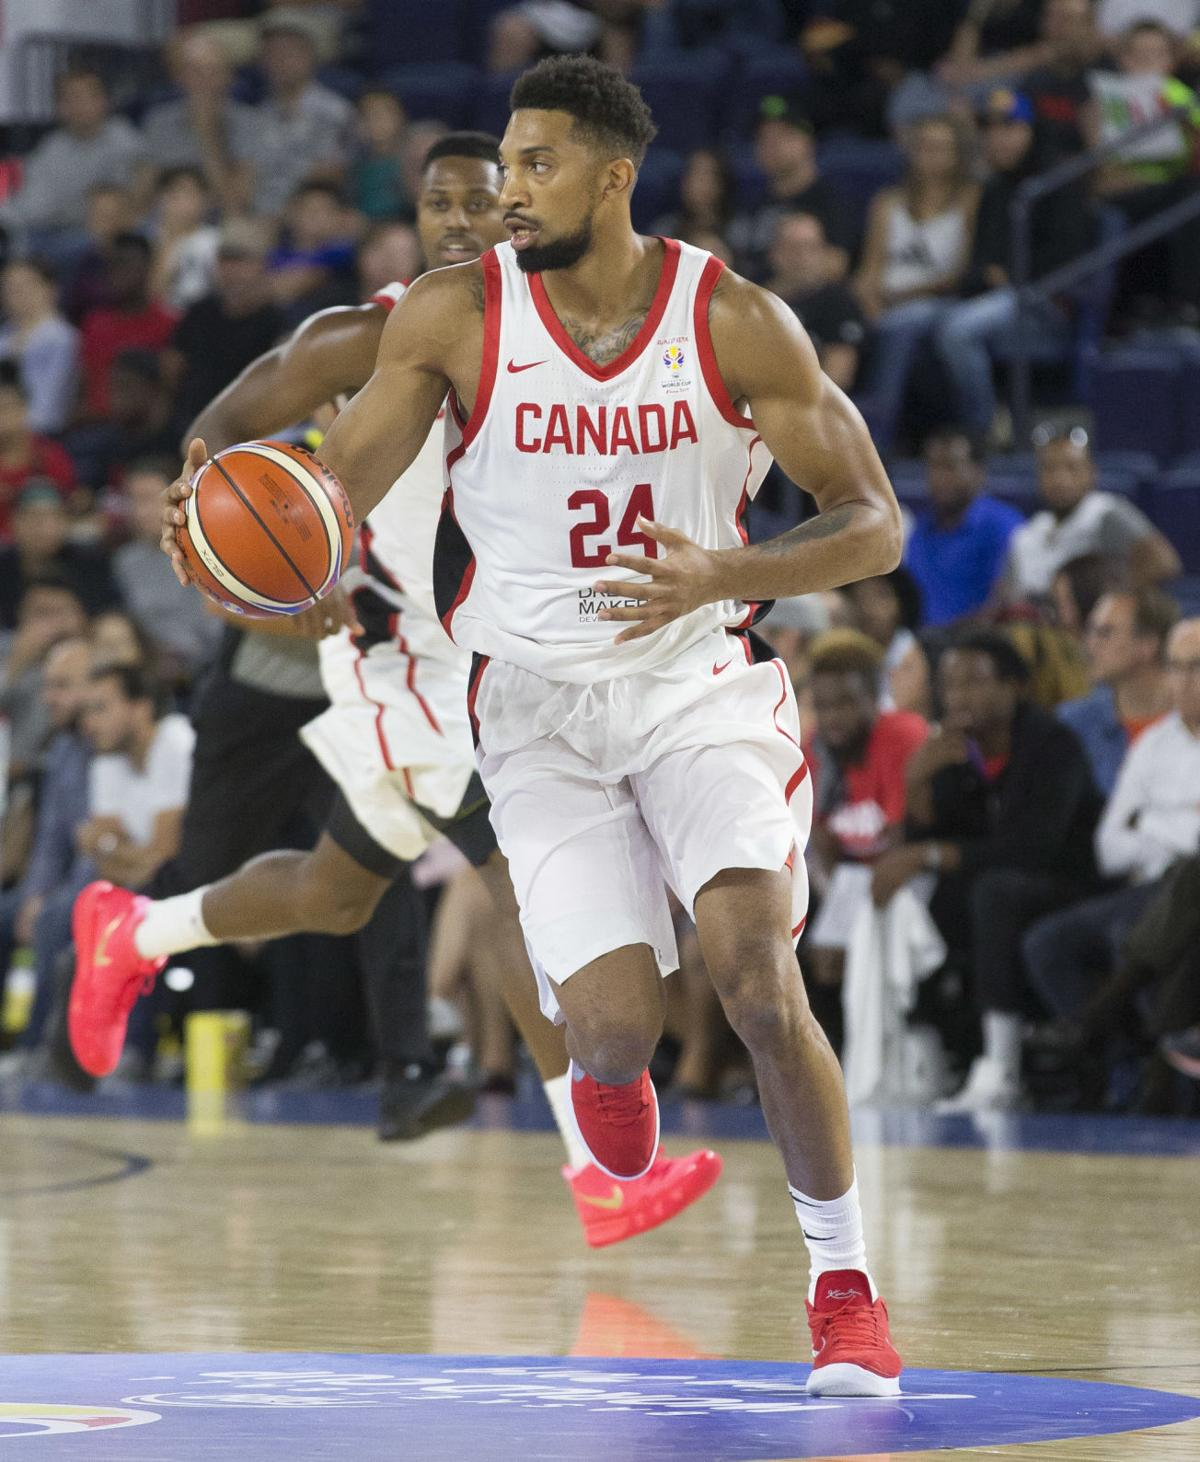 Montreal's Khem Birch signs with Toronto